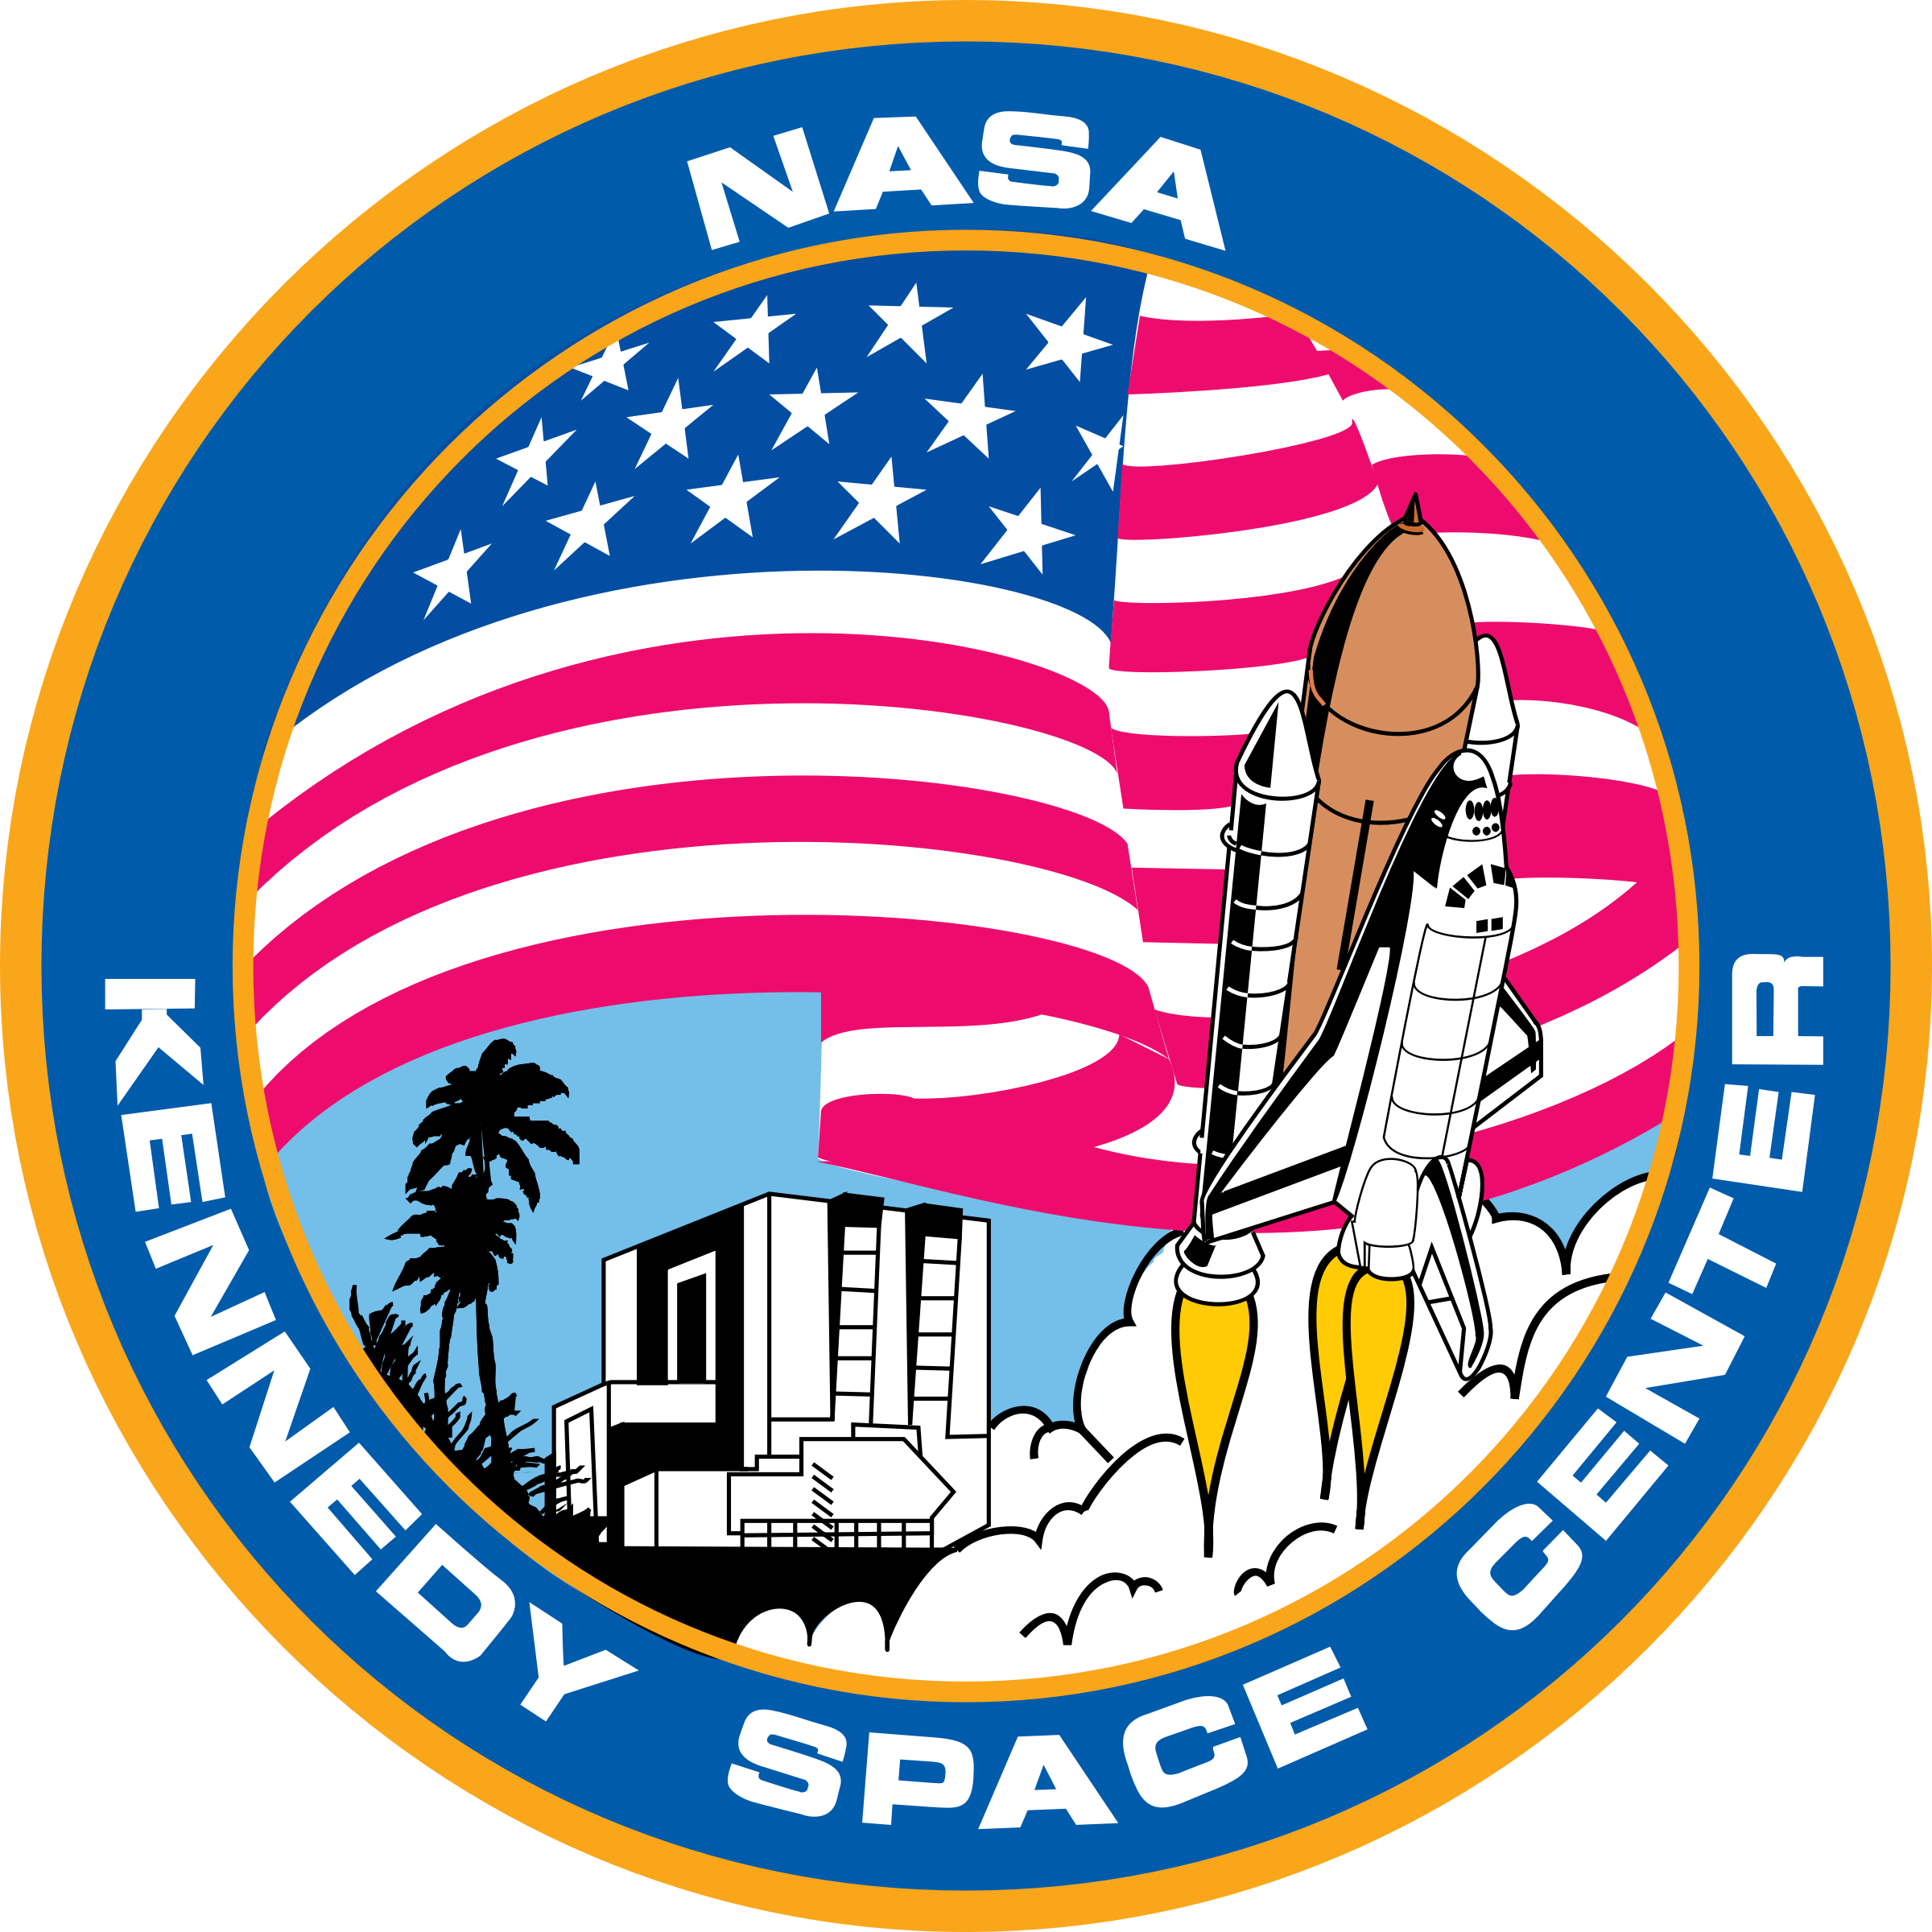 Clipart - Kennedy Space Center